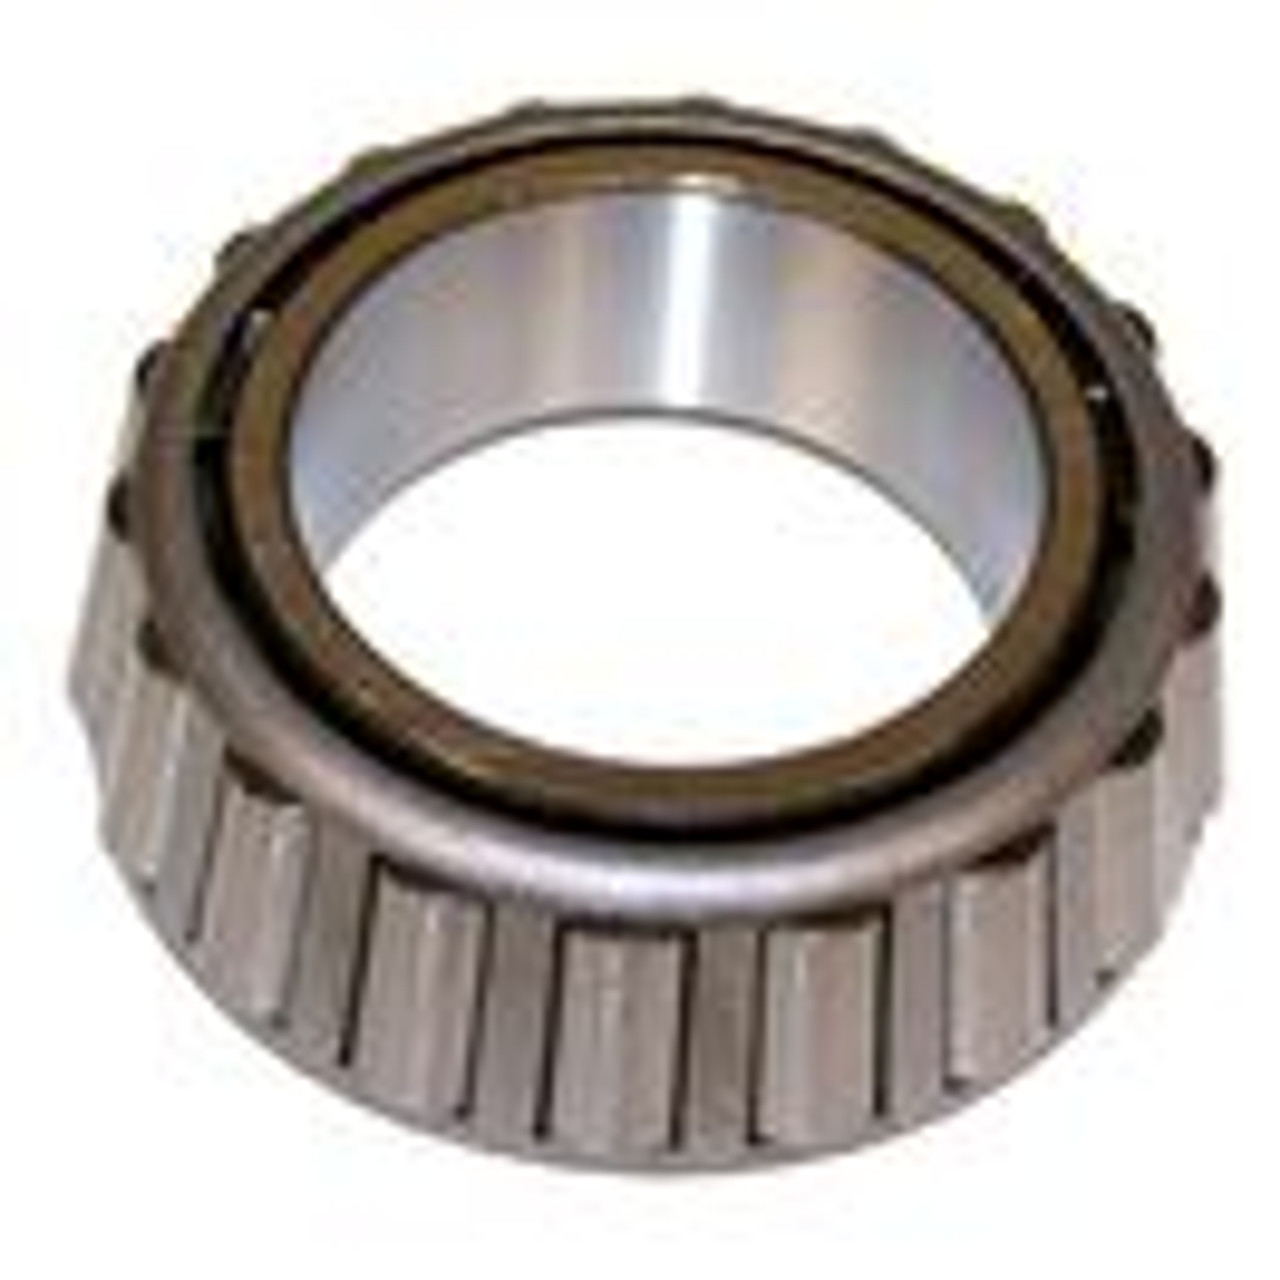 Dana 44 carrier bearing cone